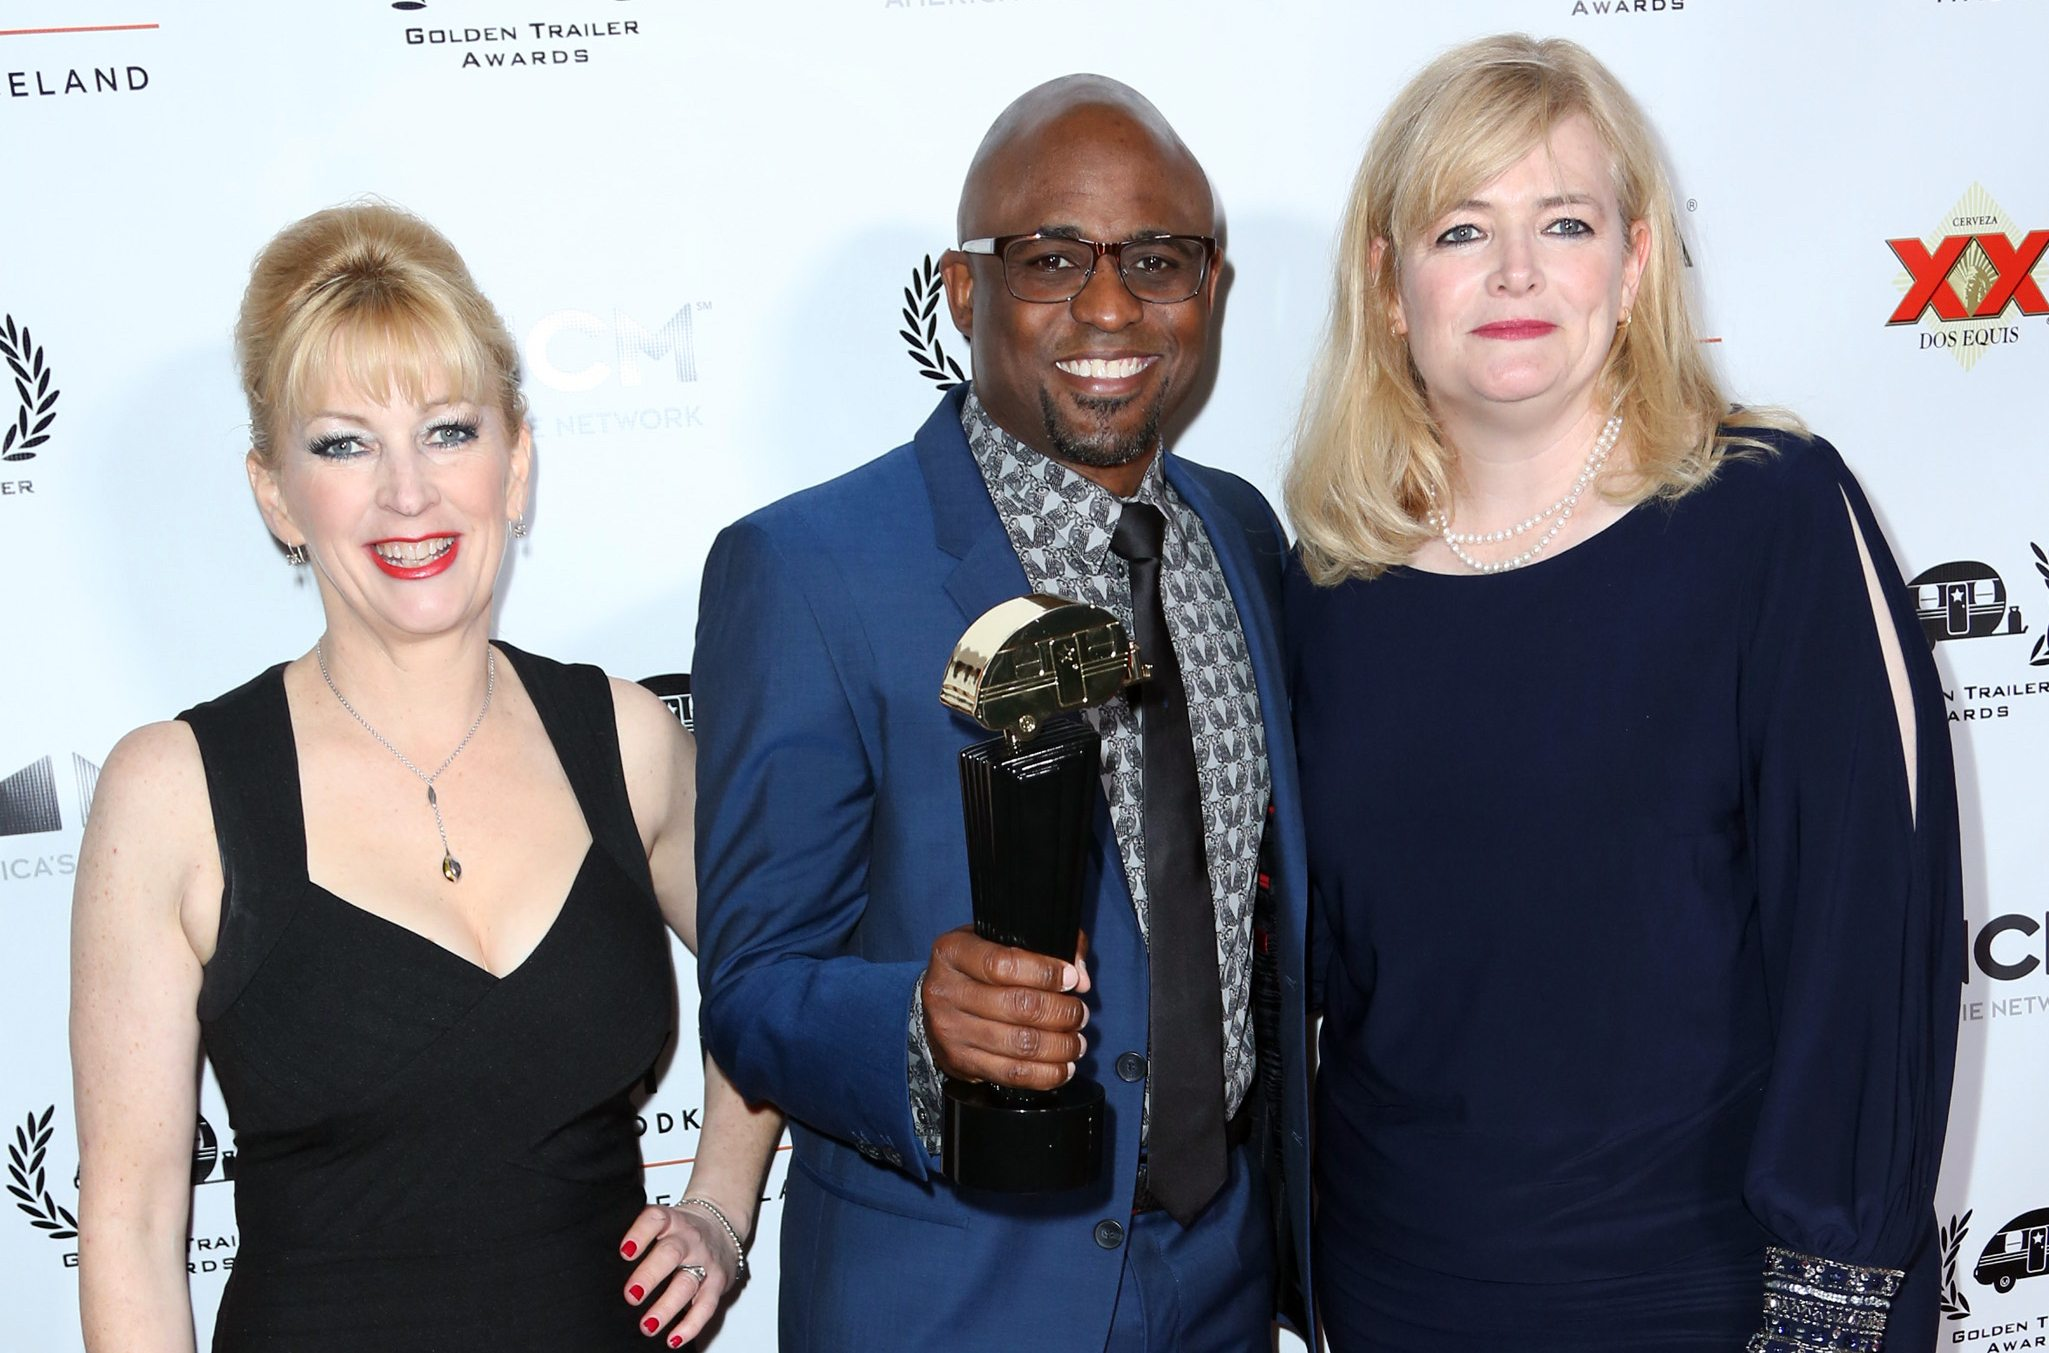 Evelyn Watters, Wayne Brady and Monic Brady at the 18th Annual Golden Trailer Awards